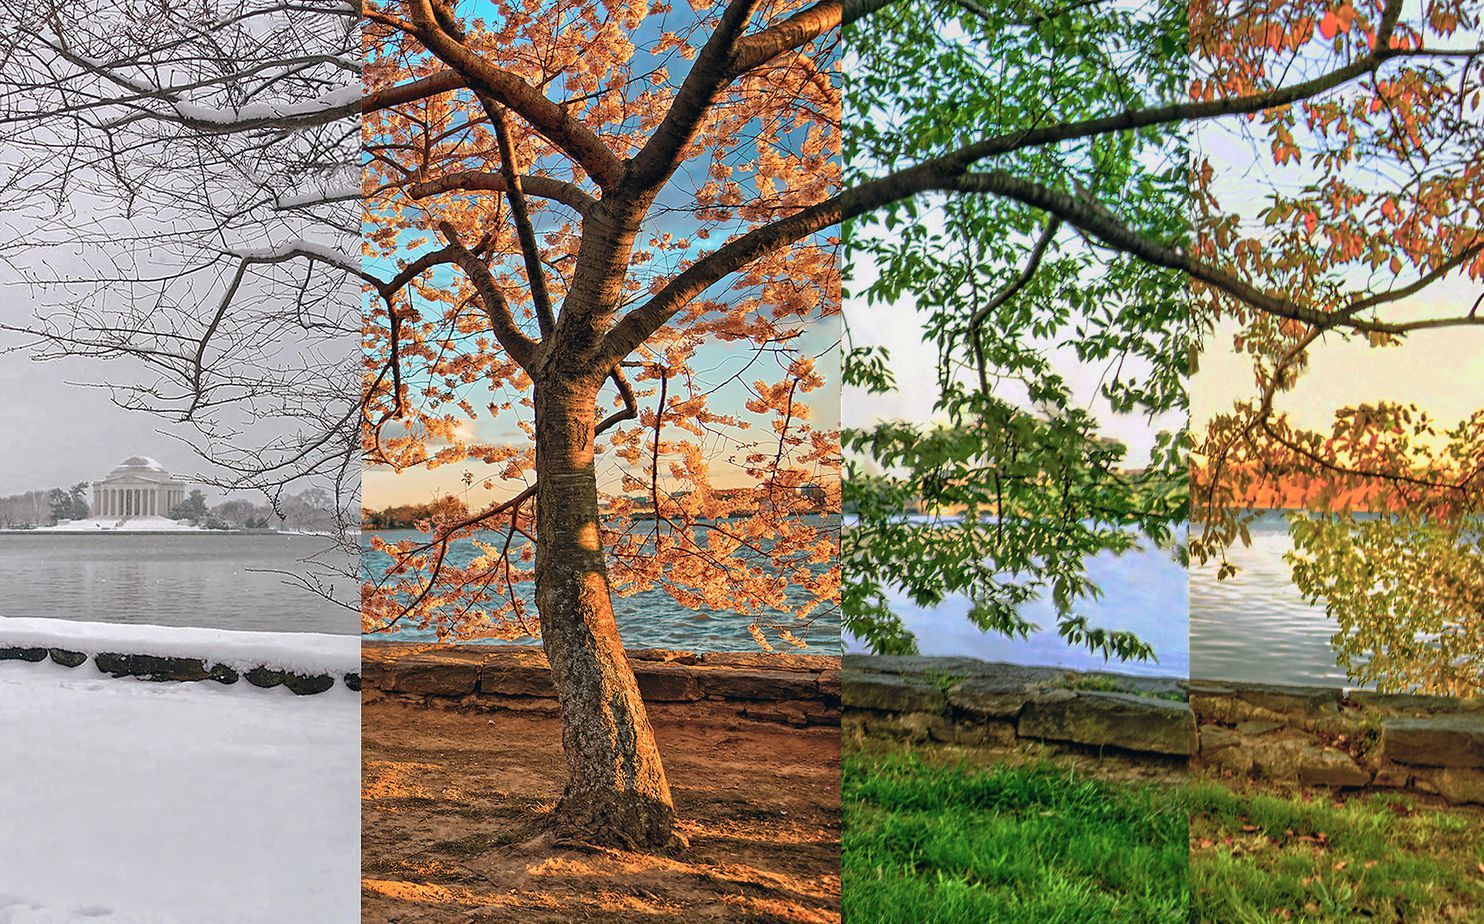 Snow To Fall Color Comparing The Beauty Of All Four